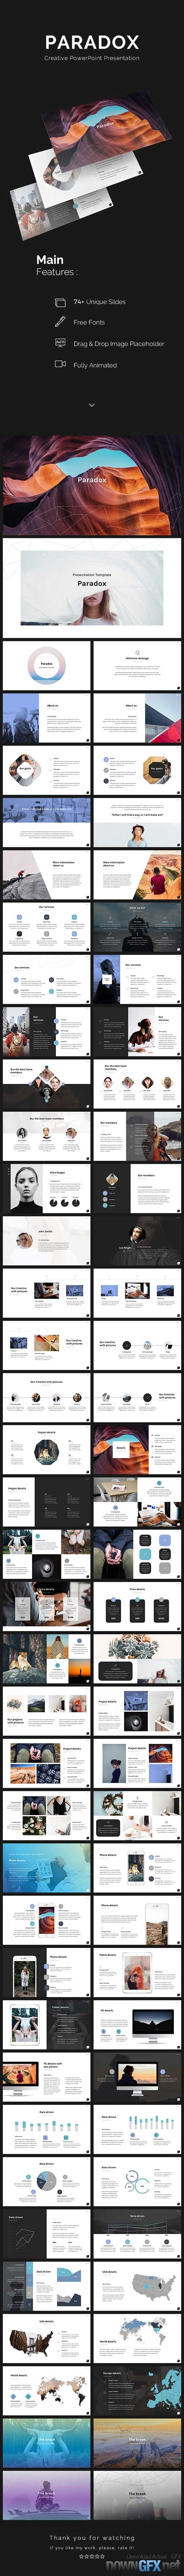 Paradox PowerPoint Template 20406480